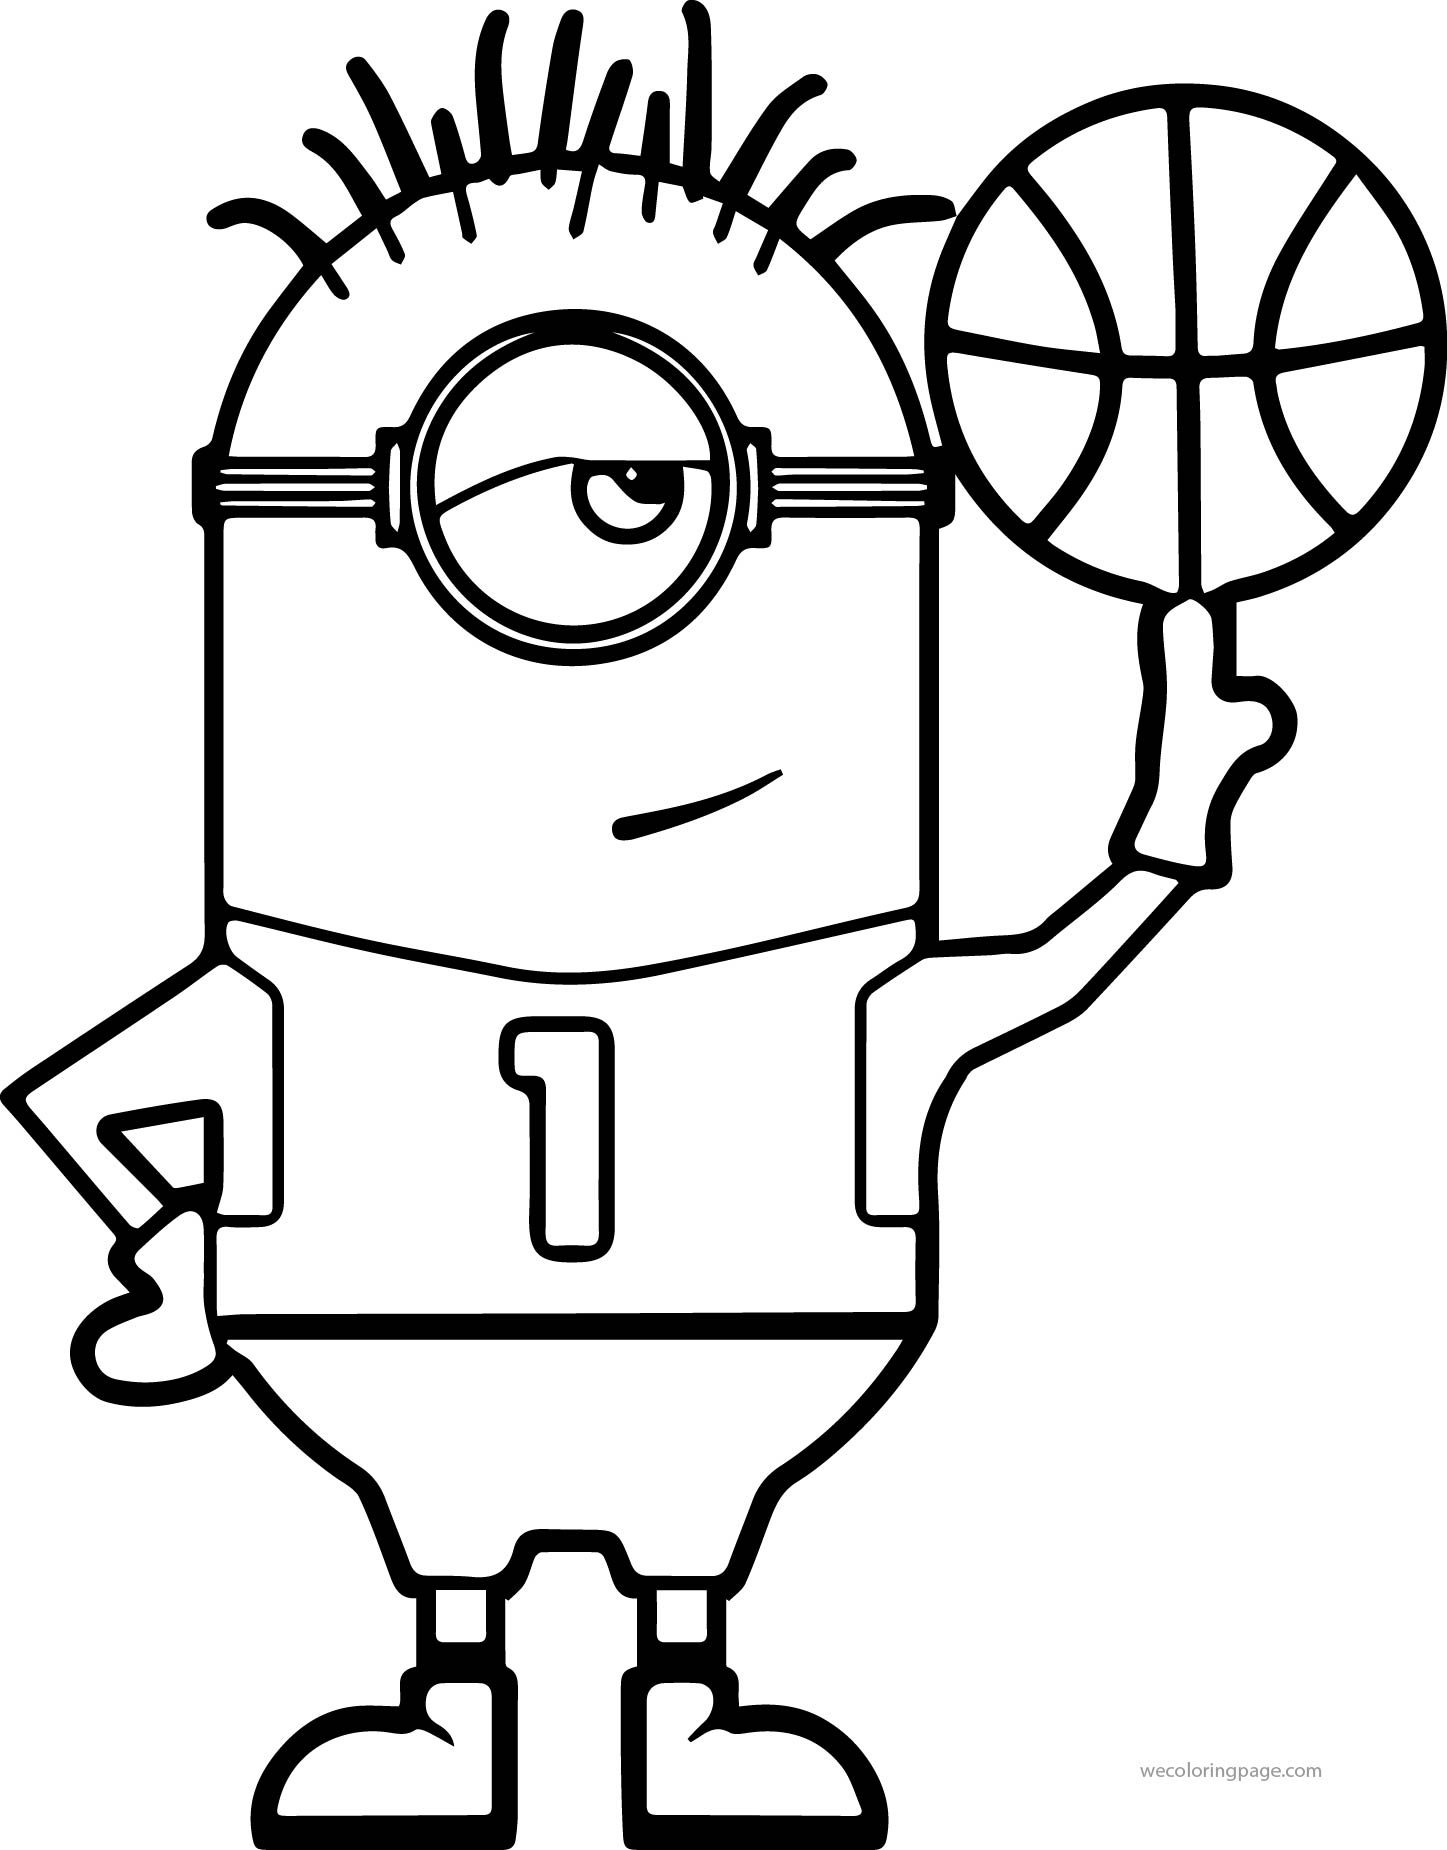 1447x1850 Minion Turn Basketball Coloring Page Wecoloringpage